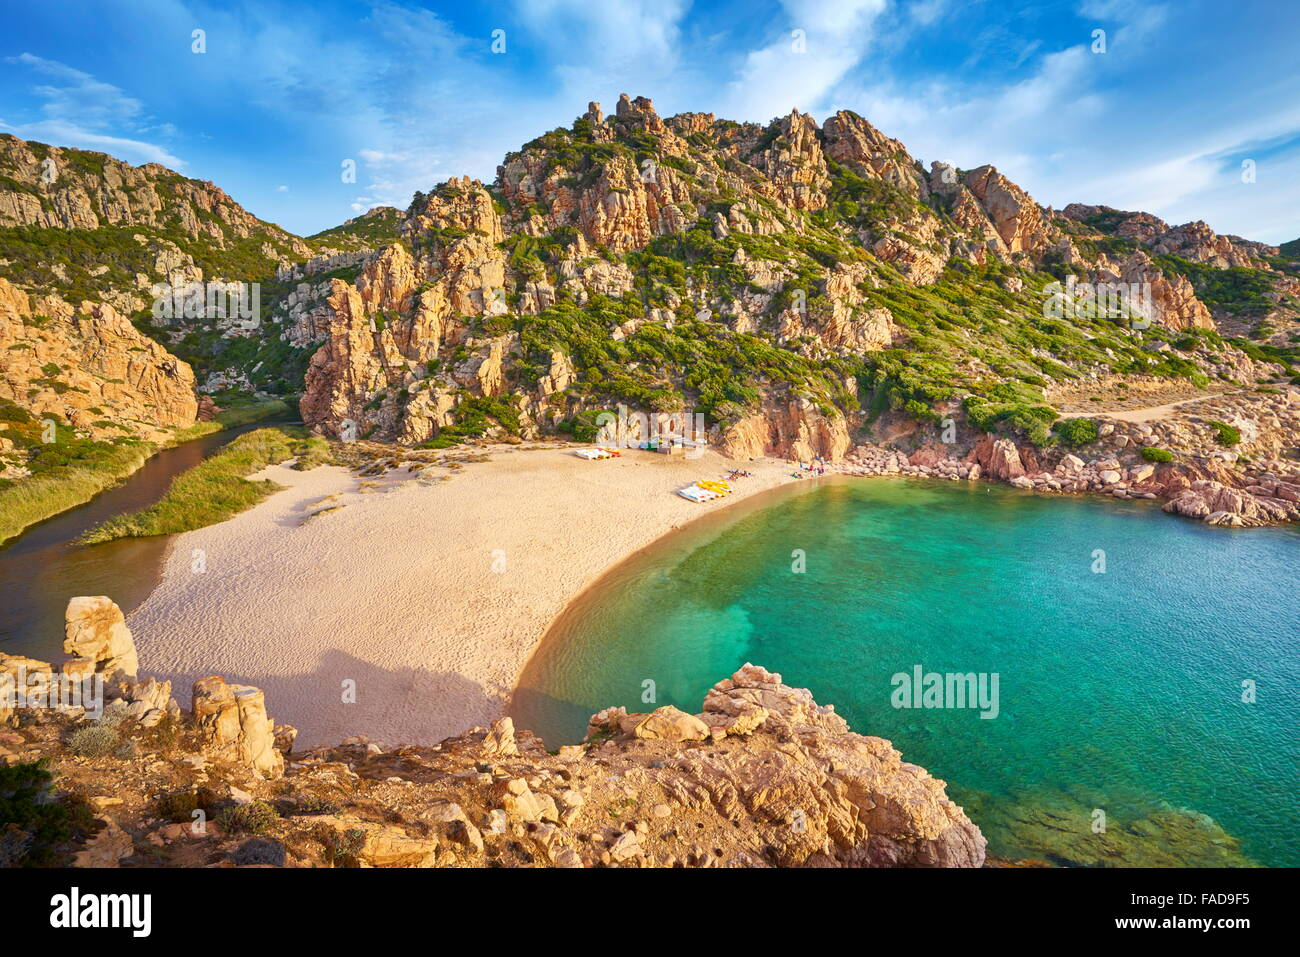 Sardaigne - Costa Paradiso, Italie Photo Stock